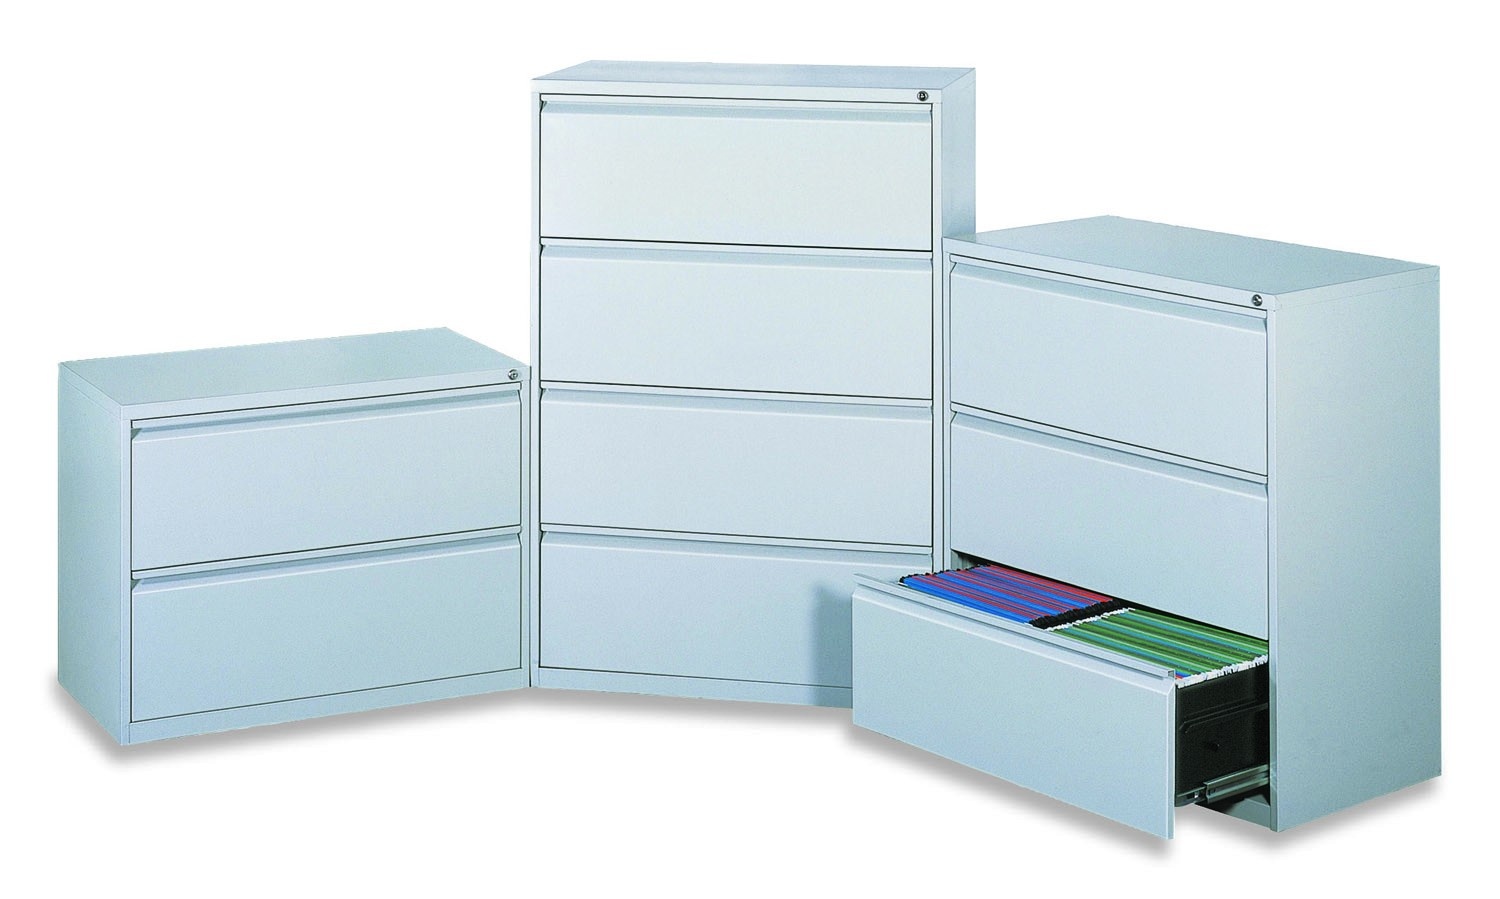 drawer file furniture lightbox boltz lateral cabinets filecabinet moreview fcab steel cabinet lat